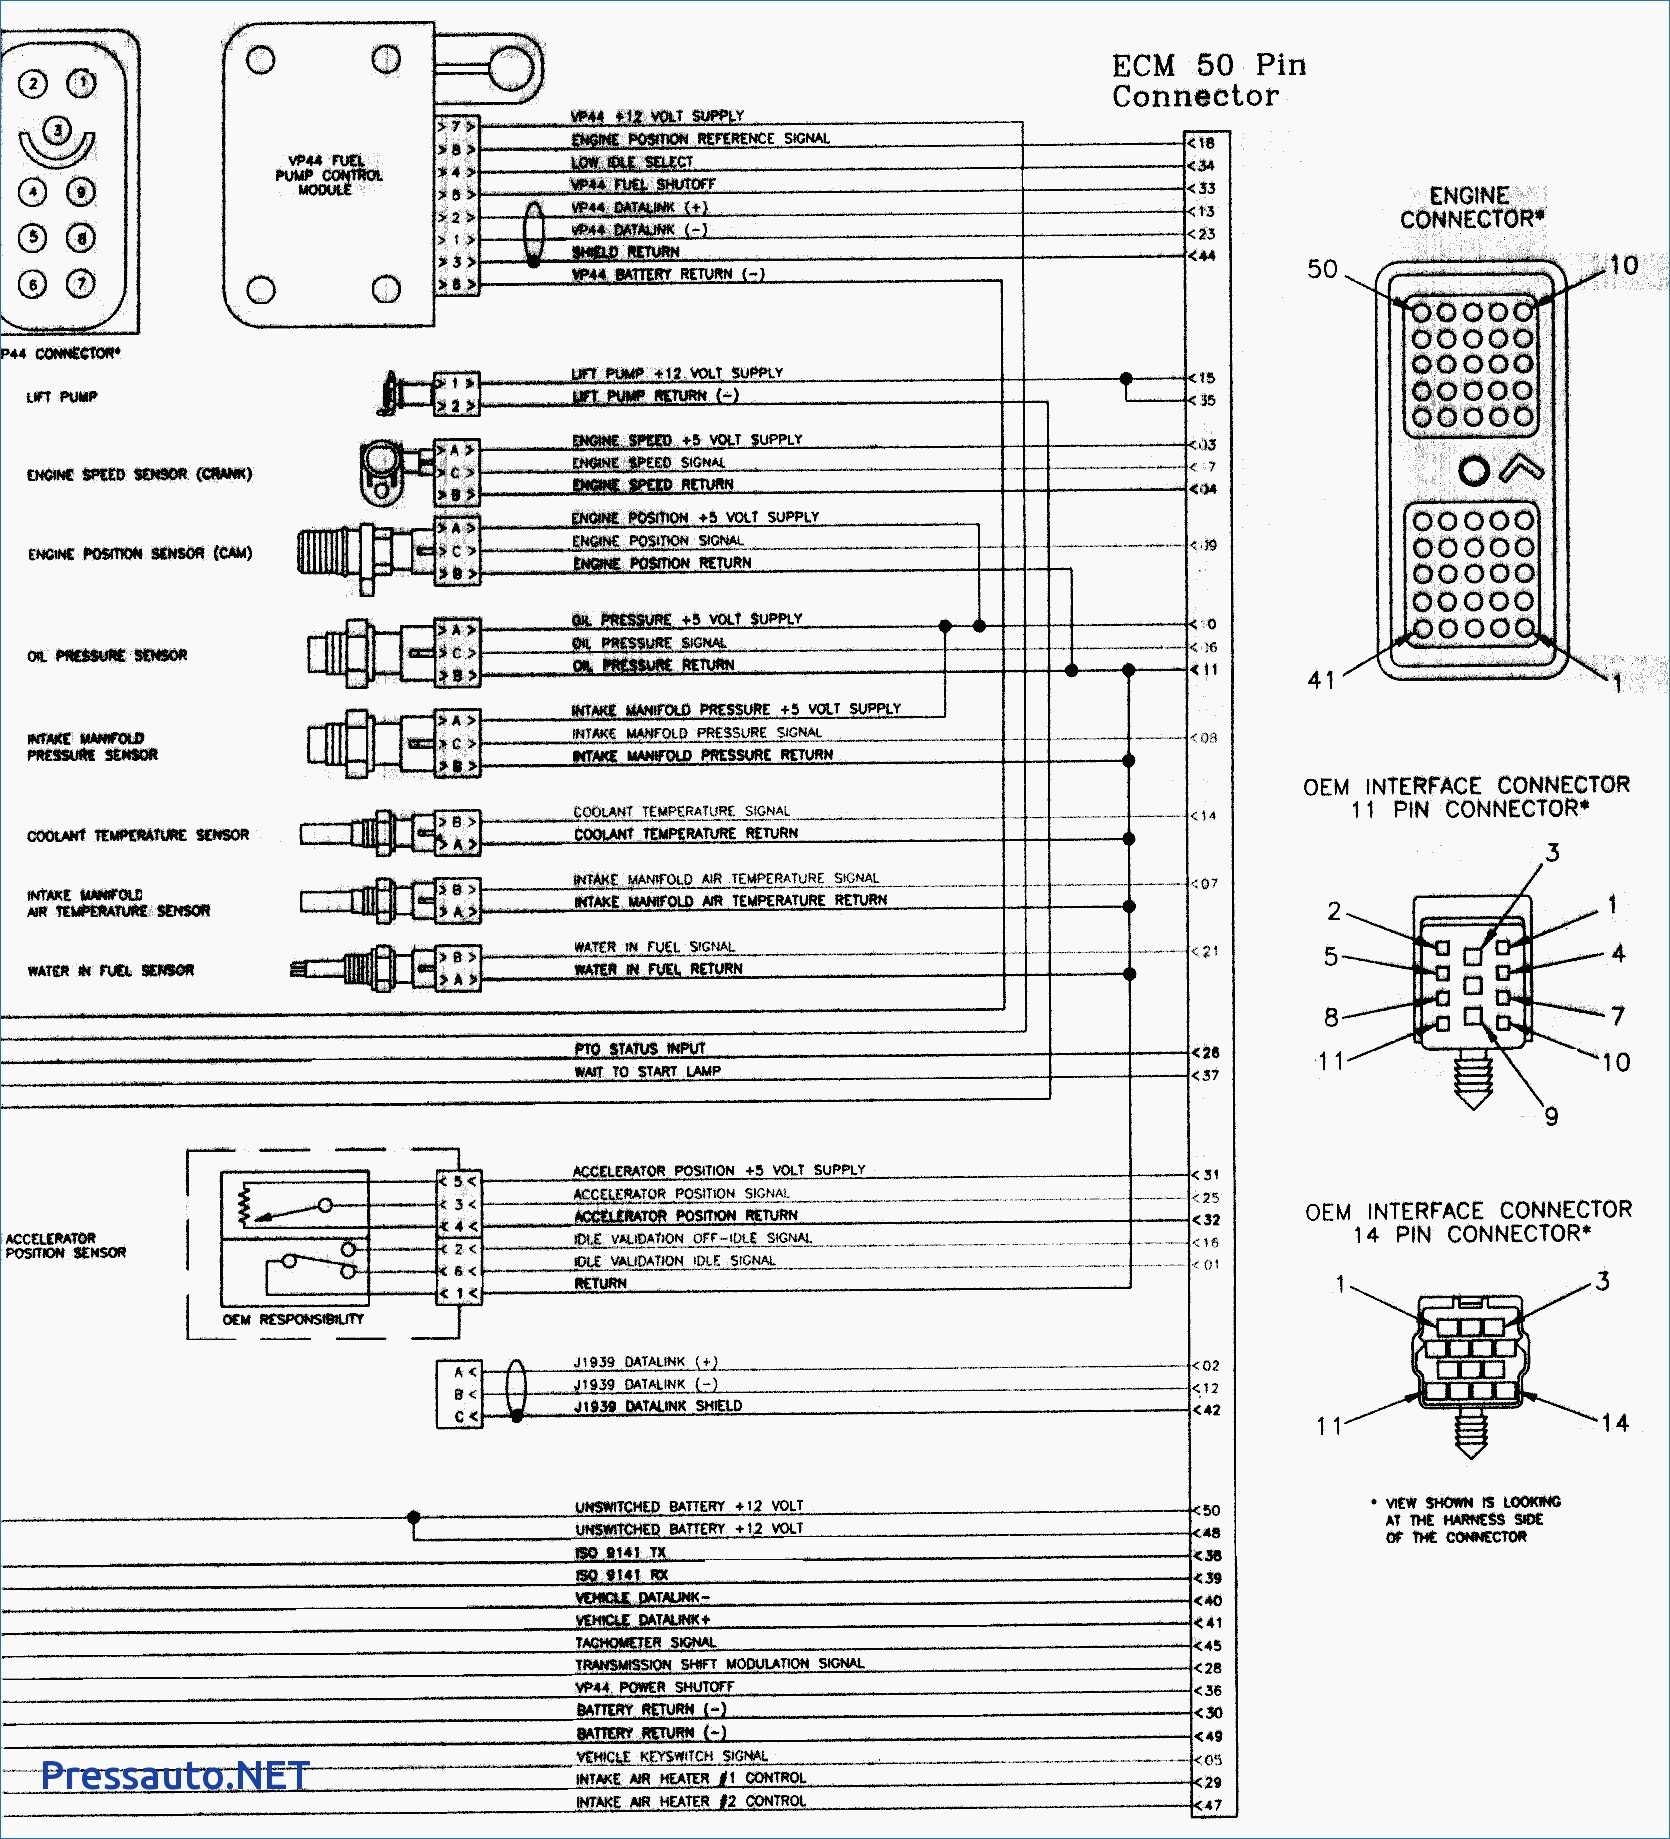 98 Dodge Ram Trailer Wiring Diagram Sample on 1995 dodge ram 2500 vacuum line diagram, 2004 dodge 3500 wiring diagram, 95 dodge 2500 headlight switch, 95 dodge 2500 radio, 2003 dodge neon pcm wiring diagram, dodge truck wiring diagram, 95 dodge 2500 exhaust, 95 dodge 2500 transmission, n14 ecm wiring diagram, dodge dart wiring diagram, 92 dodge dakota wiring diagram, dodge ram wiring diagram, dodge ram 2500 diesel fuel system diagram, 95 dodge avenger wiring diagram, 95 dodge ram 3500, dodge cummins wiring diagram, mopar a body wiring diagram, 1998 dodge radio wiring diagram, 95 dodge 2500 wheels, 95 dodge cummins,